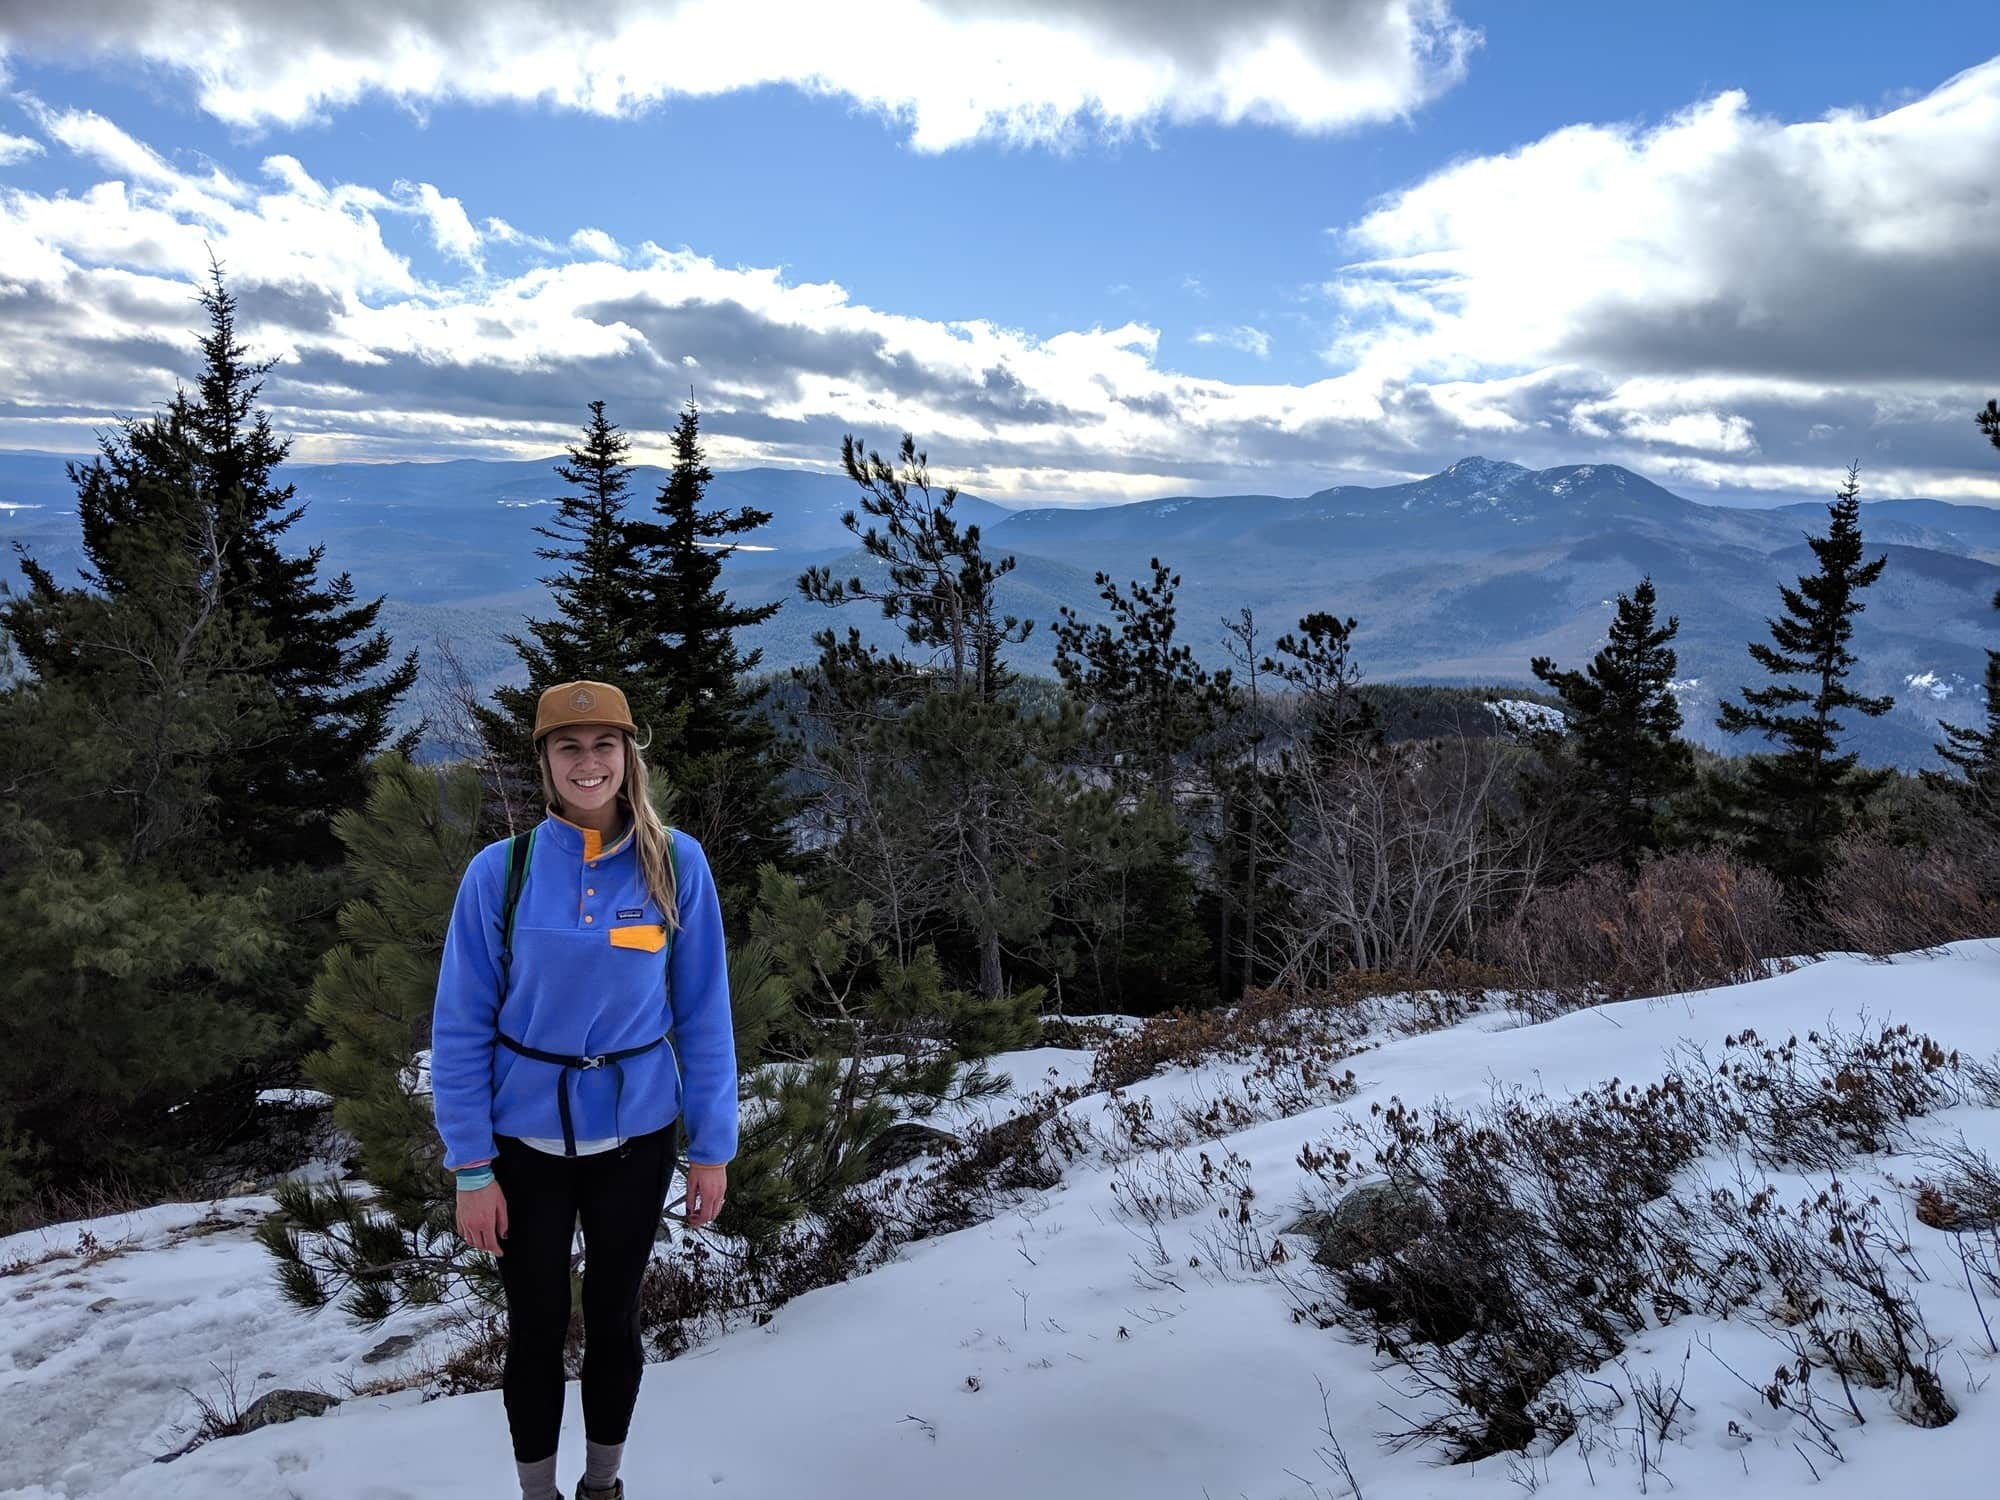 Looking for a hike in New Hampshire? Our trail guide to hiking South Mount Mountain in the winter includes what to bring, 3 ways to get there & more.